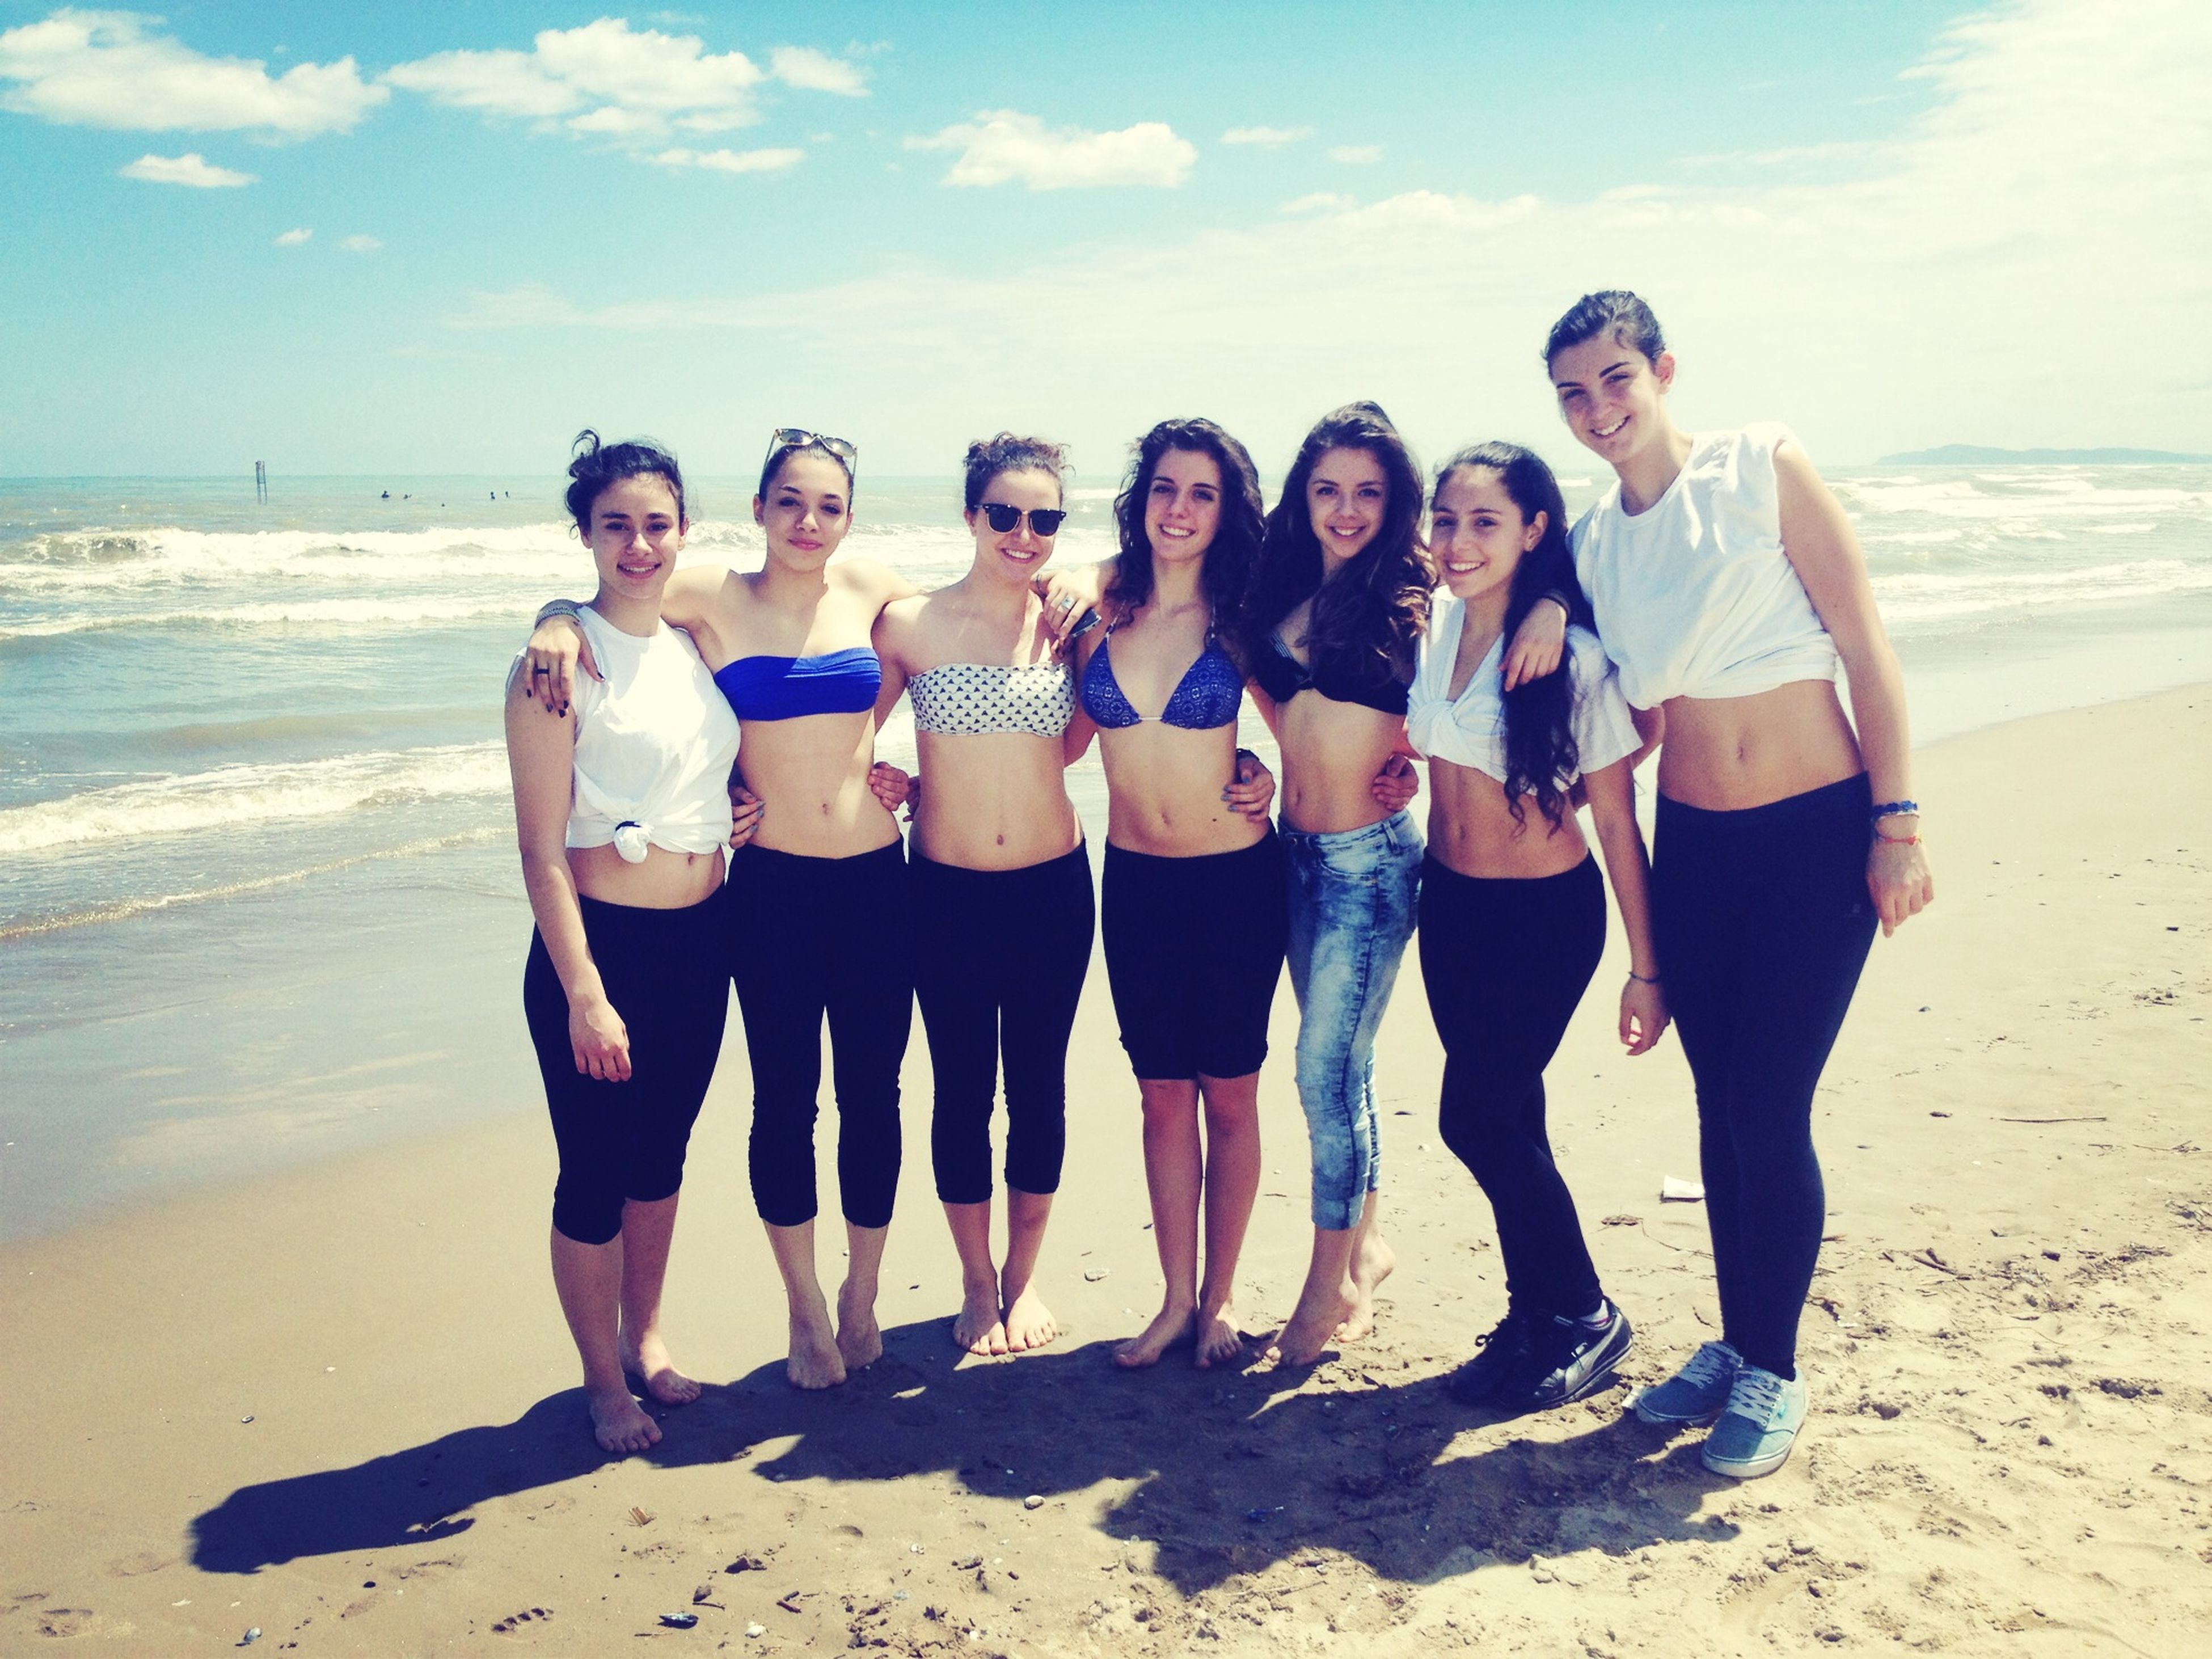 beach, sea, lifestyles, water, togetherness, leisure activity, sand, shore, sky, full length, casual clothing, vacations, bonding, standing, horizon over water, love, friendship, person